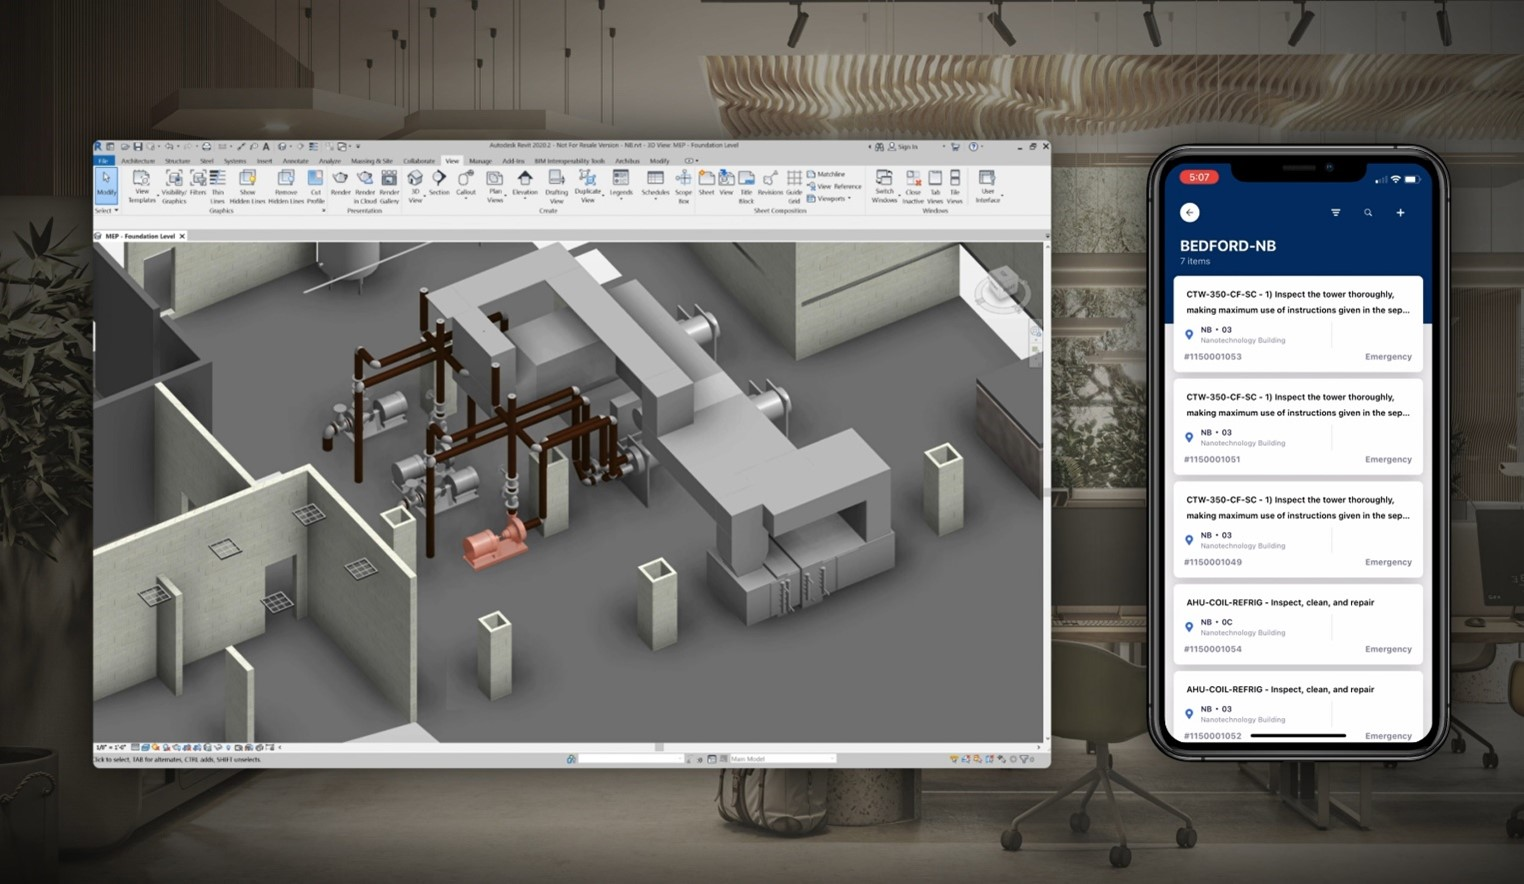 Software used to manage facility operations